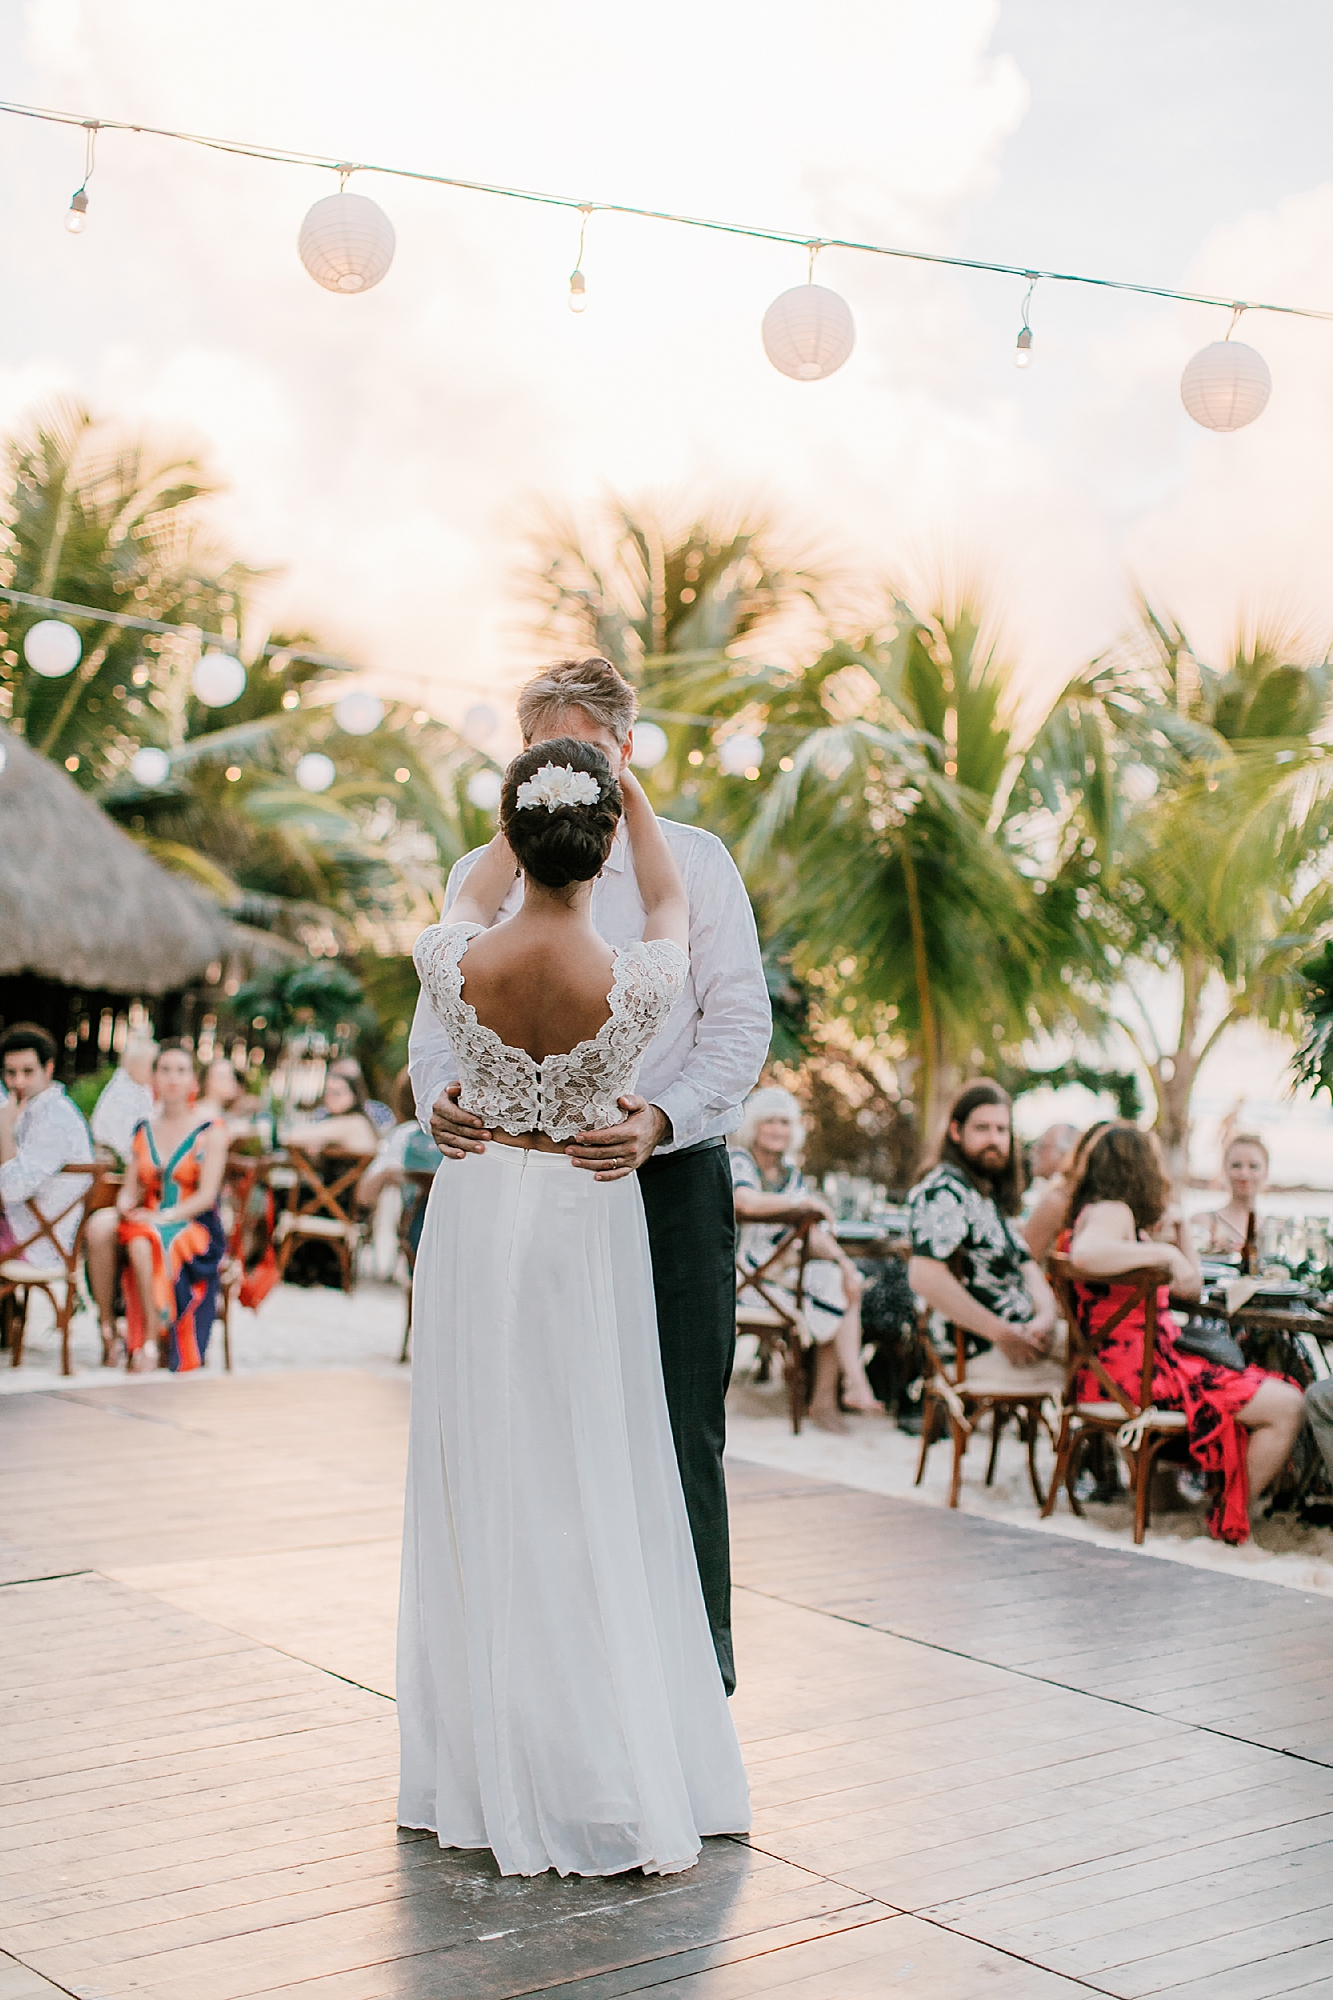 Stylish and Candid Destination Film Wedding Photography in Tulum Mexico by Magdalena Studios 0052